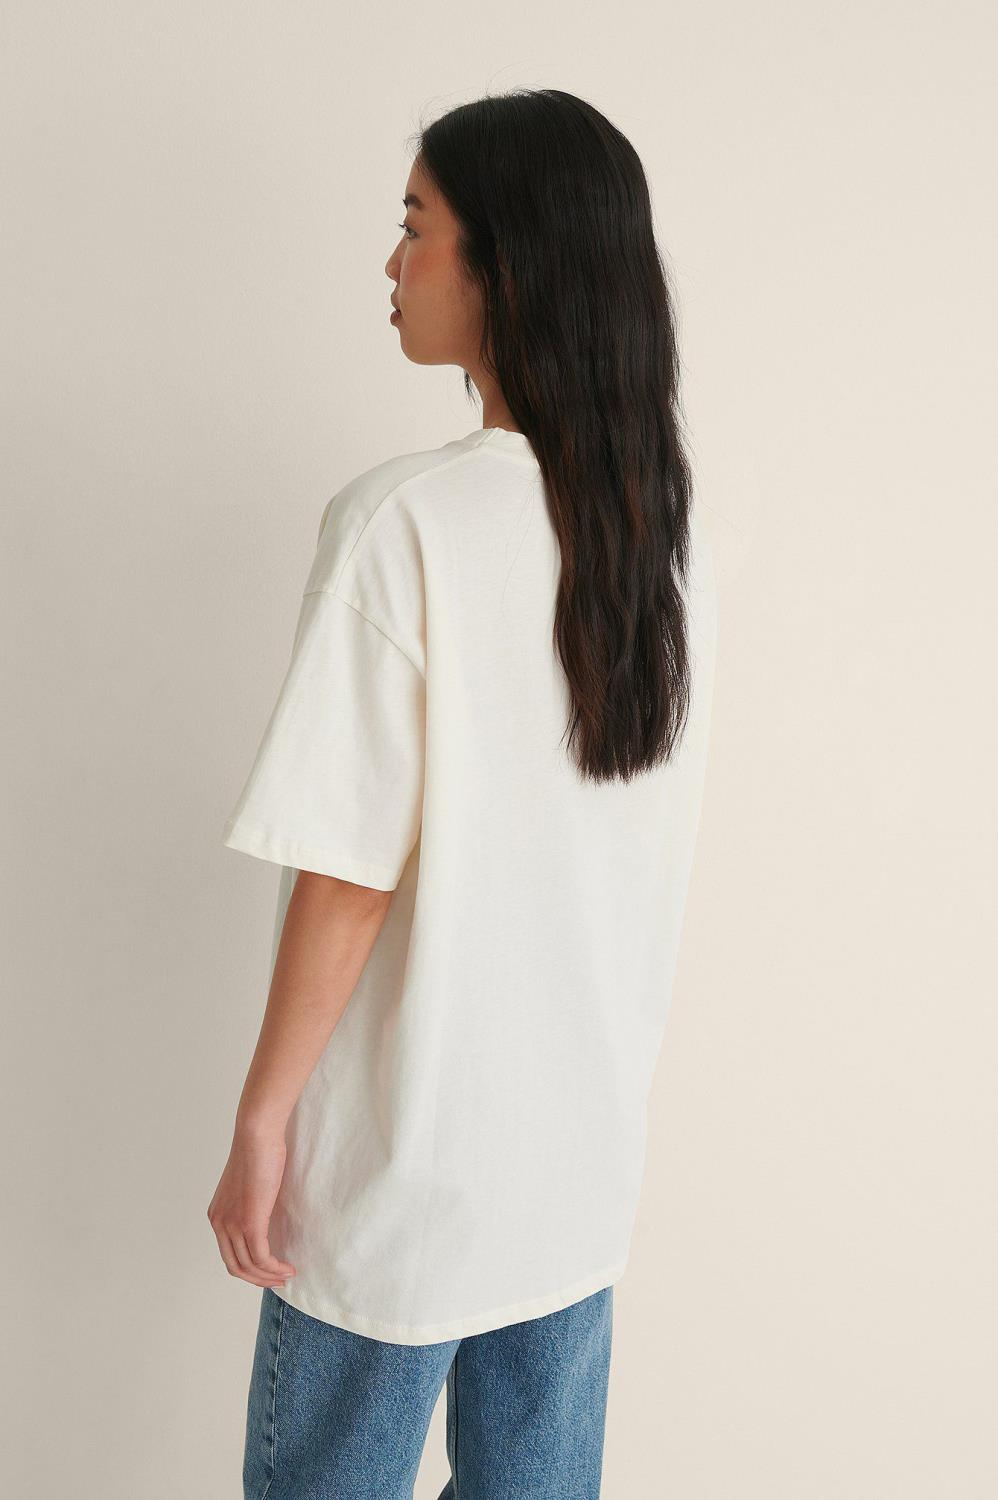 gallery-3745-for-1726-000013-off white universe